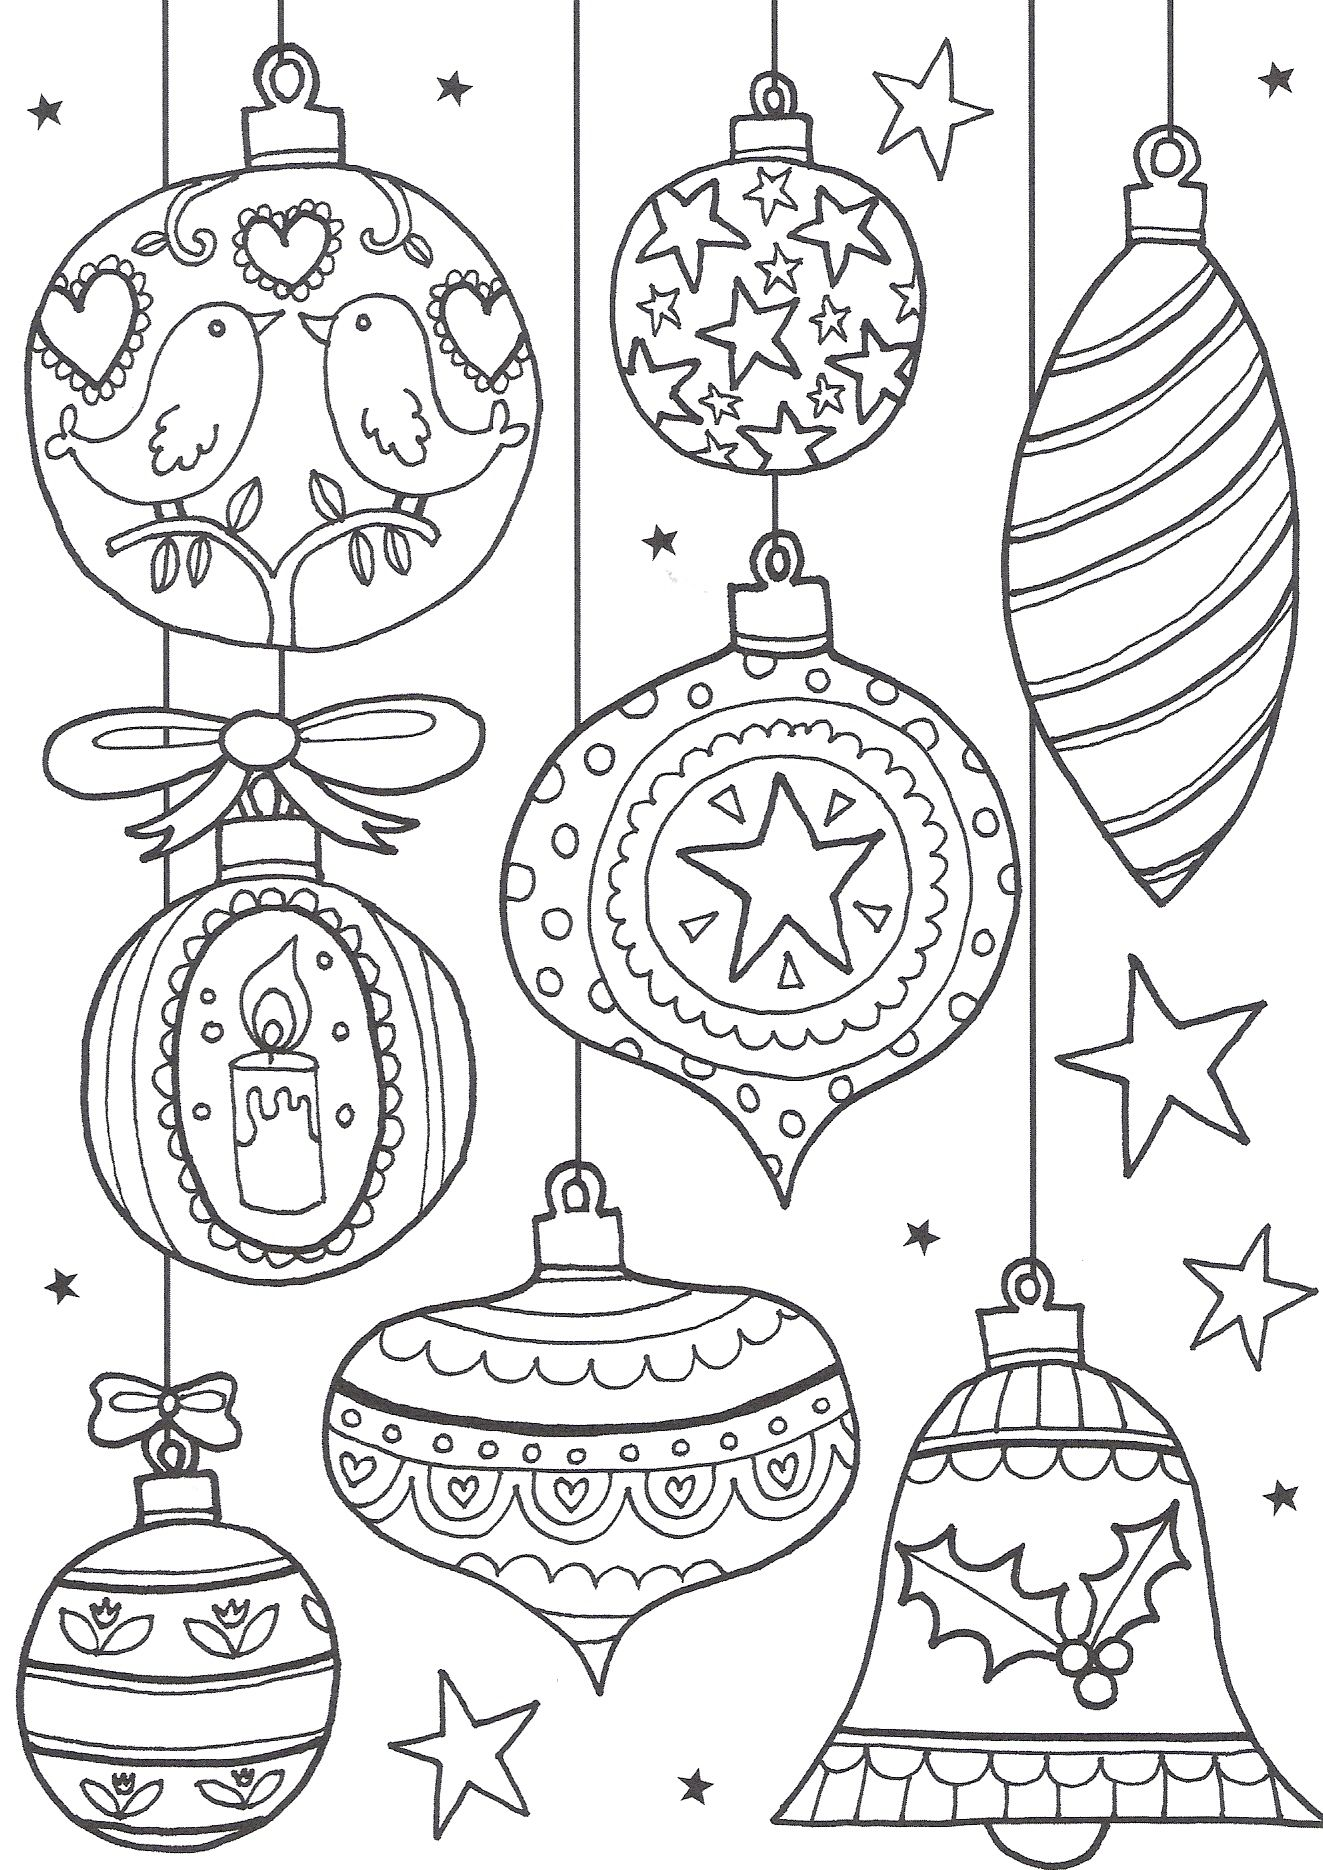 free christmas colouring pages for adults u2013 the ultimate roundup